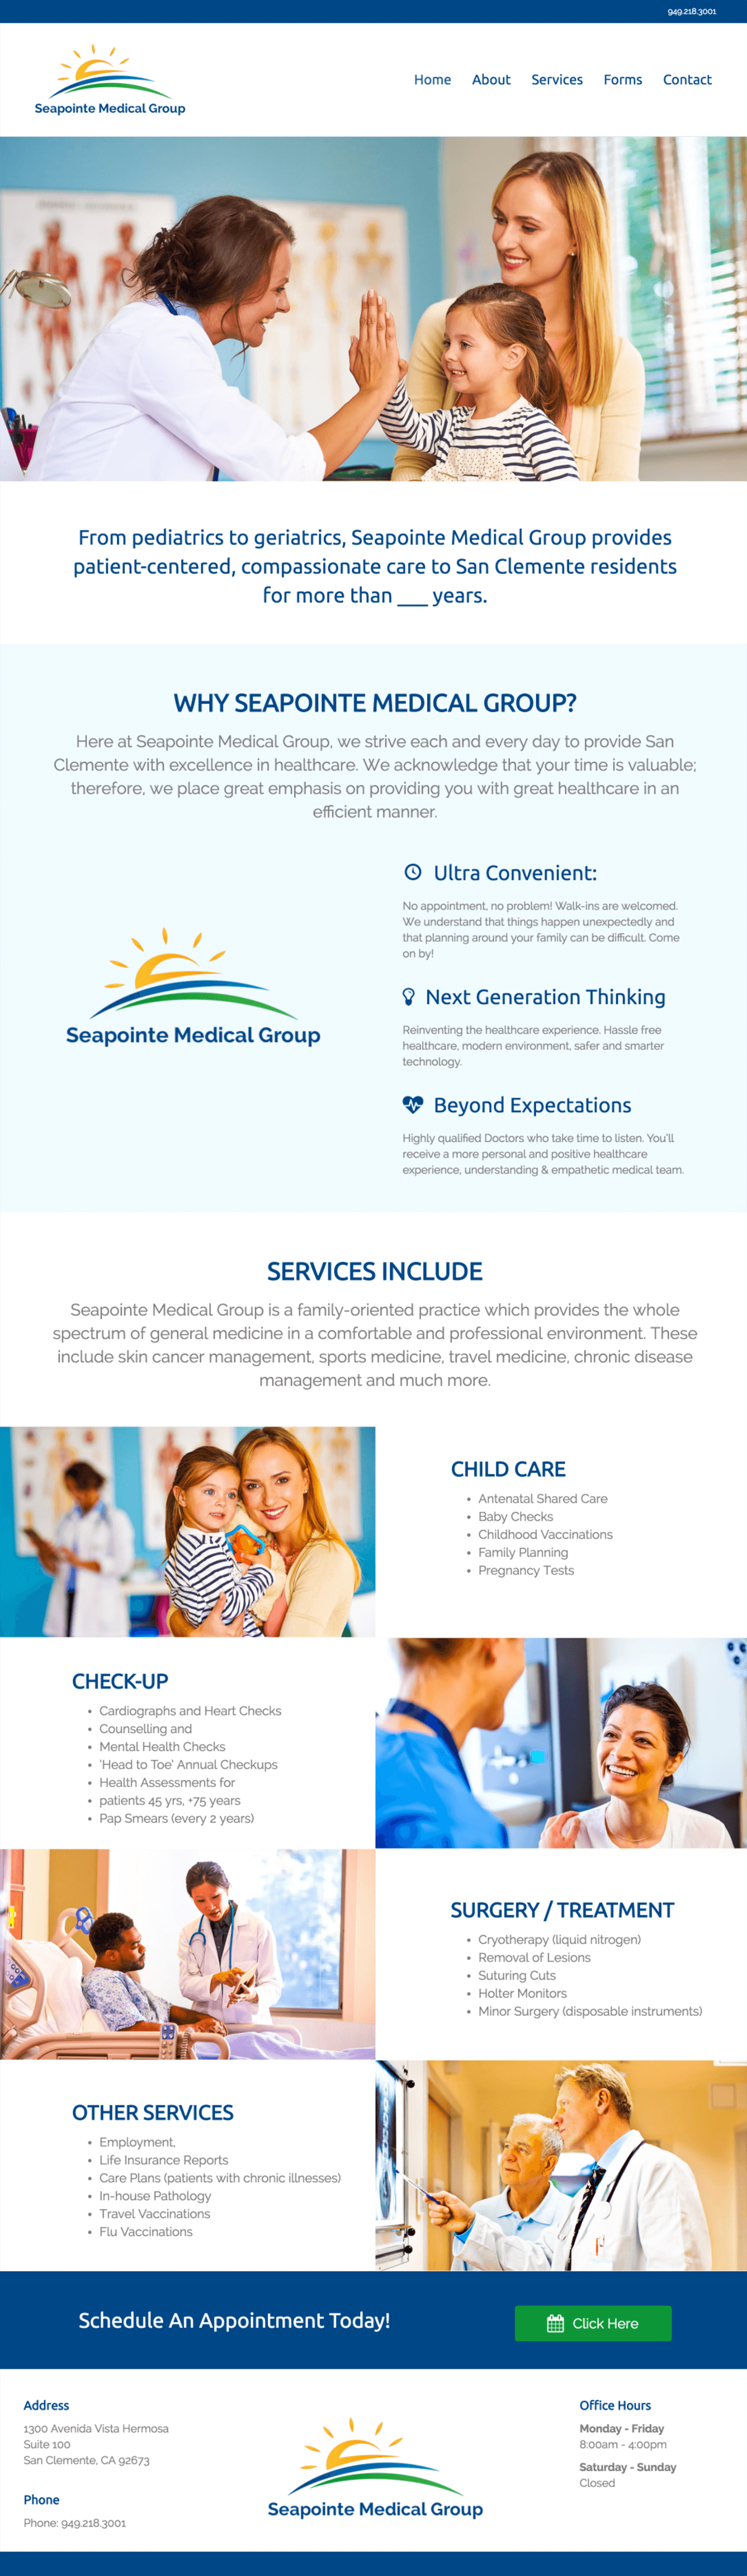 Seapoinite-Medical-Group-Doctors-Office-Website-Design-Home-Page